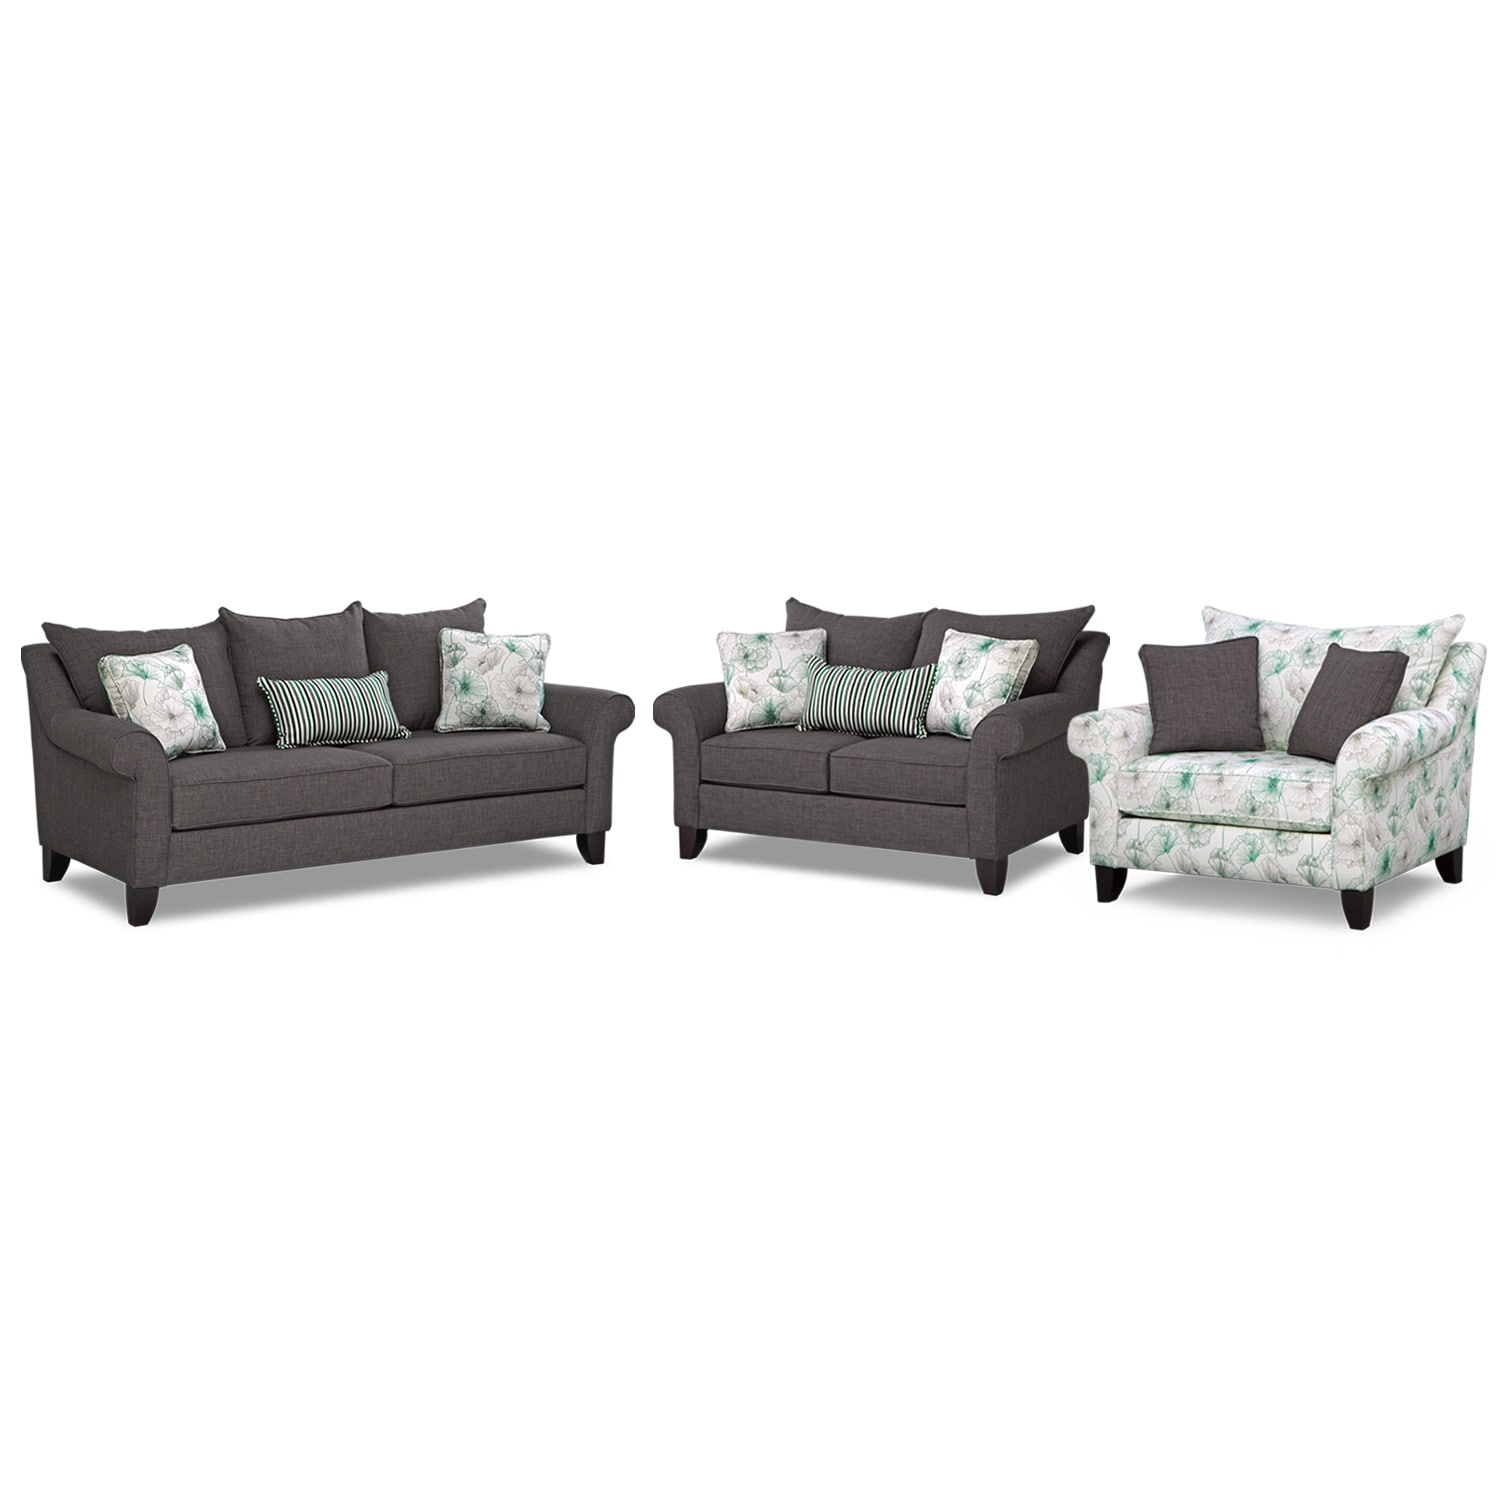 Living Room Furniture - Jasmine 3 Pc. Living Room